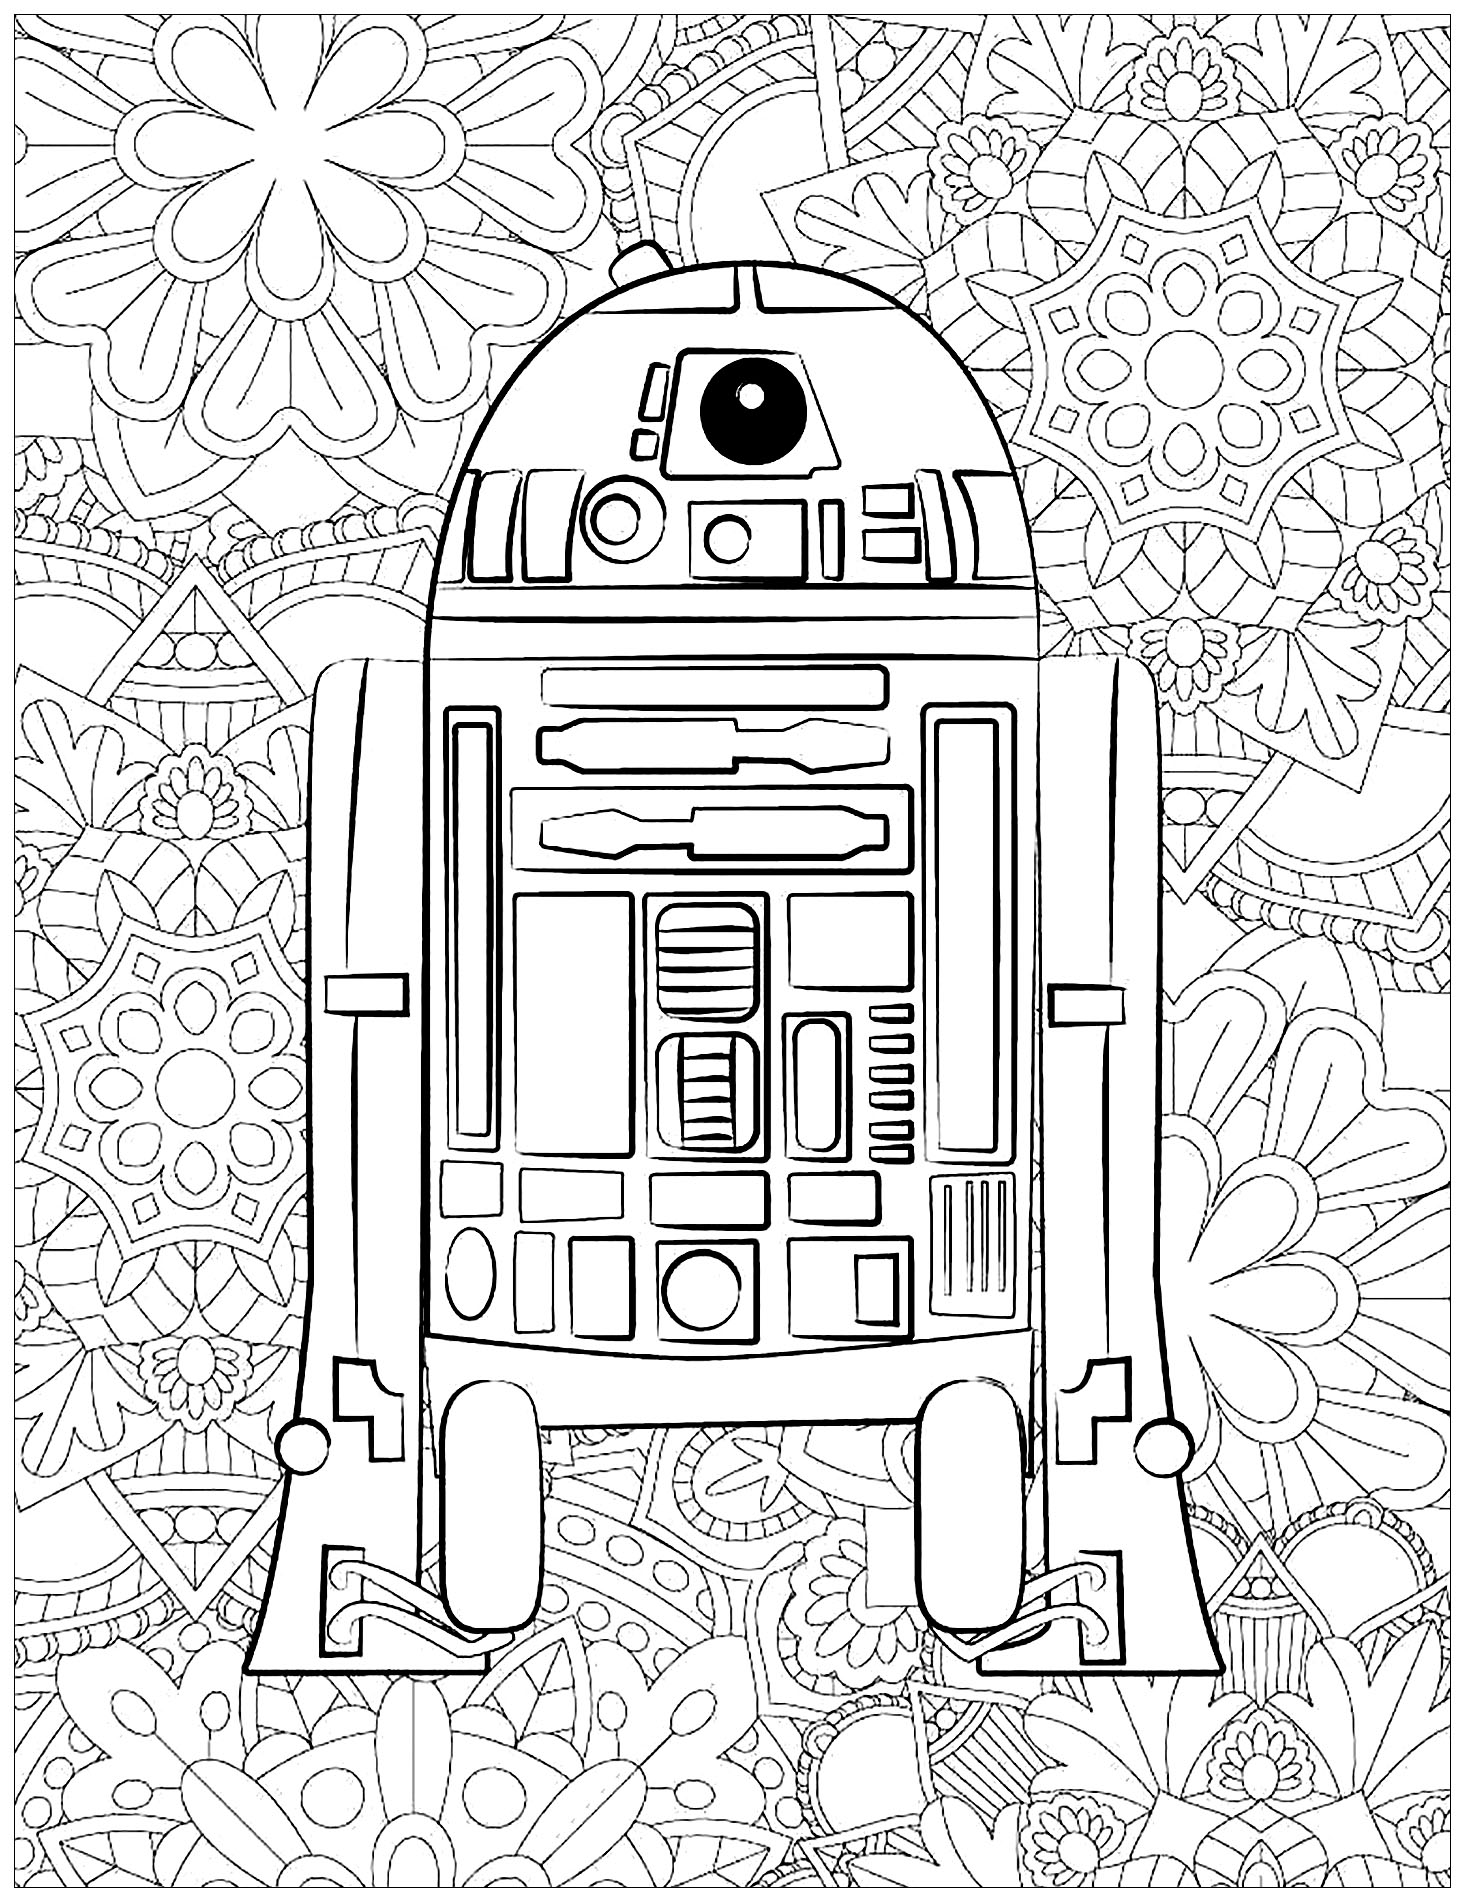 star wars colouring for kids star wars free to color for kids star wars kids coloring colouring for kids wars star